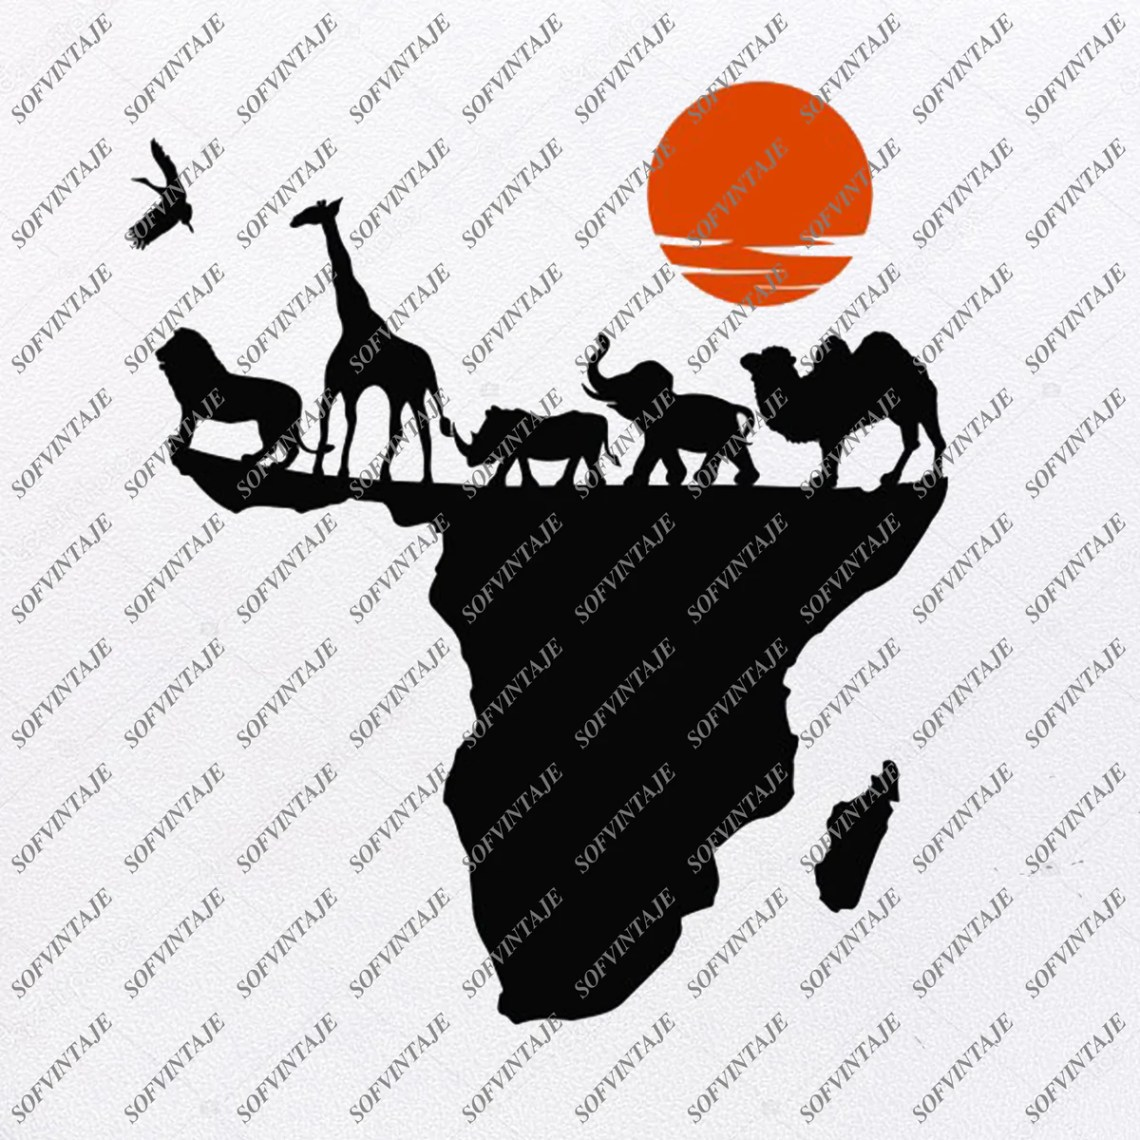 Download Africa Svg Files - African Continent Svg Design - African ...